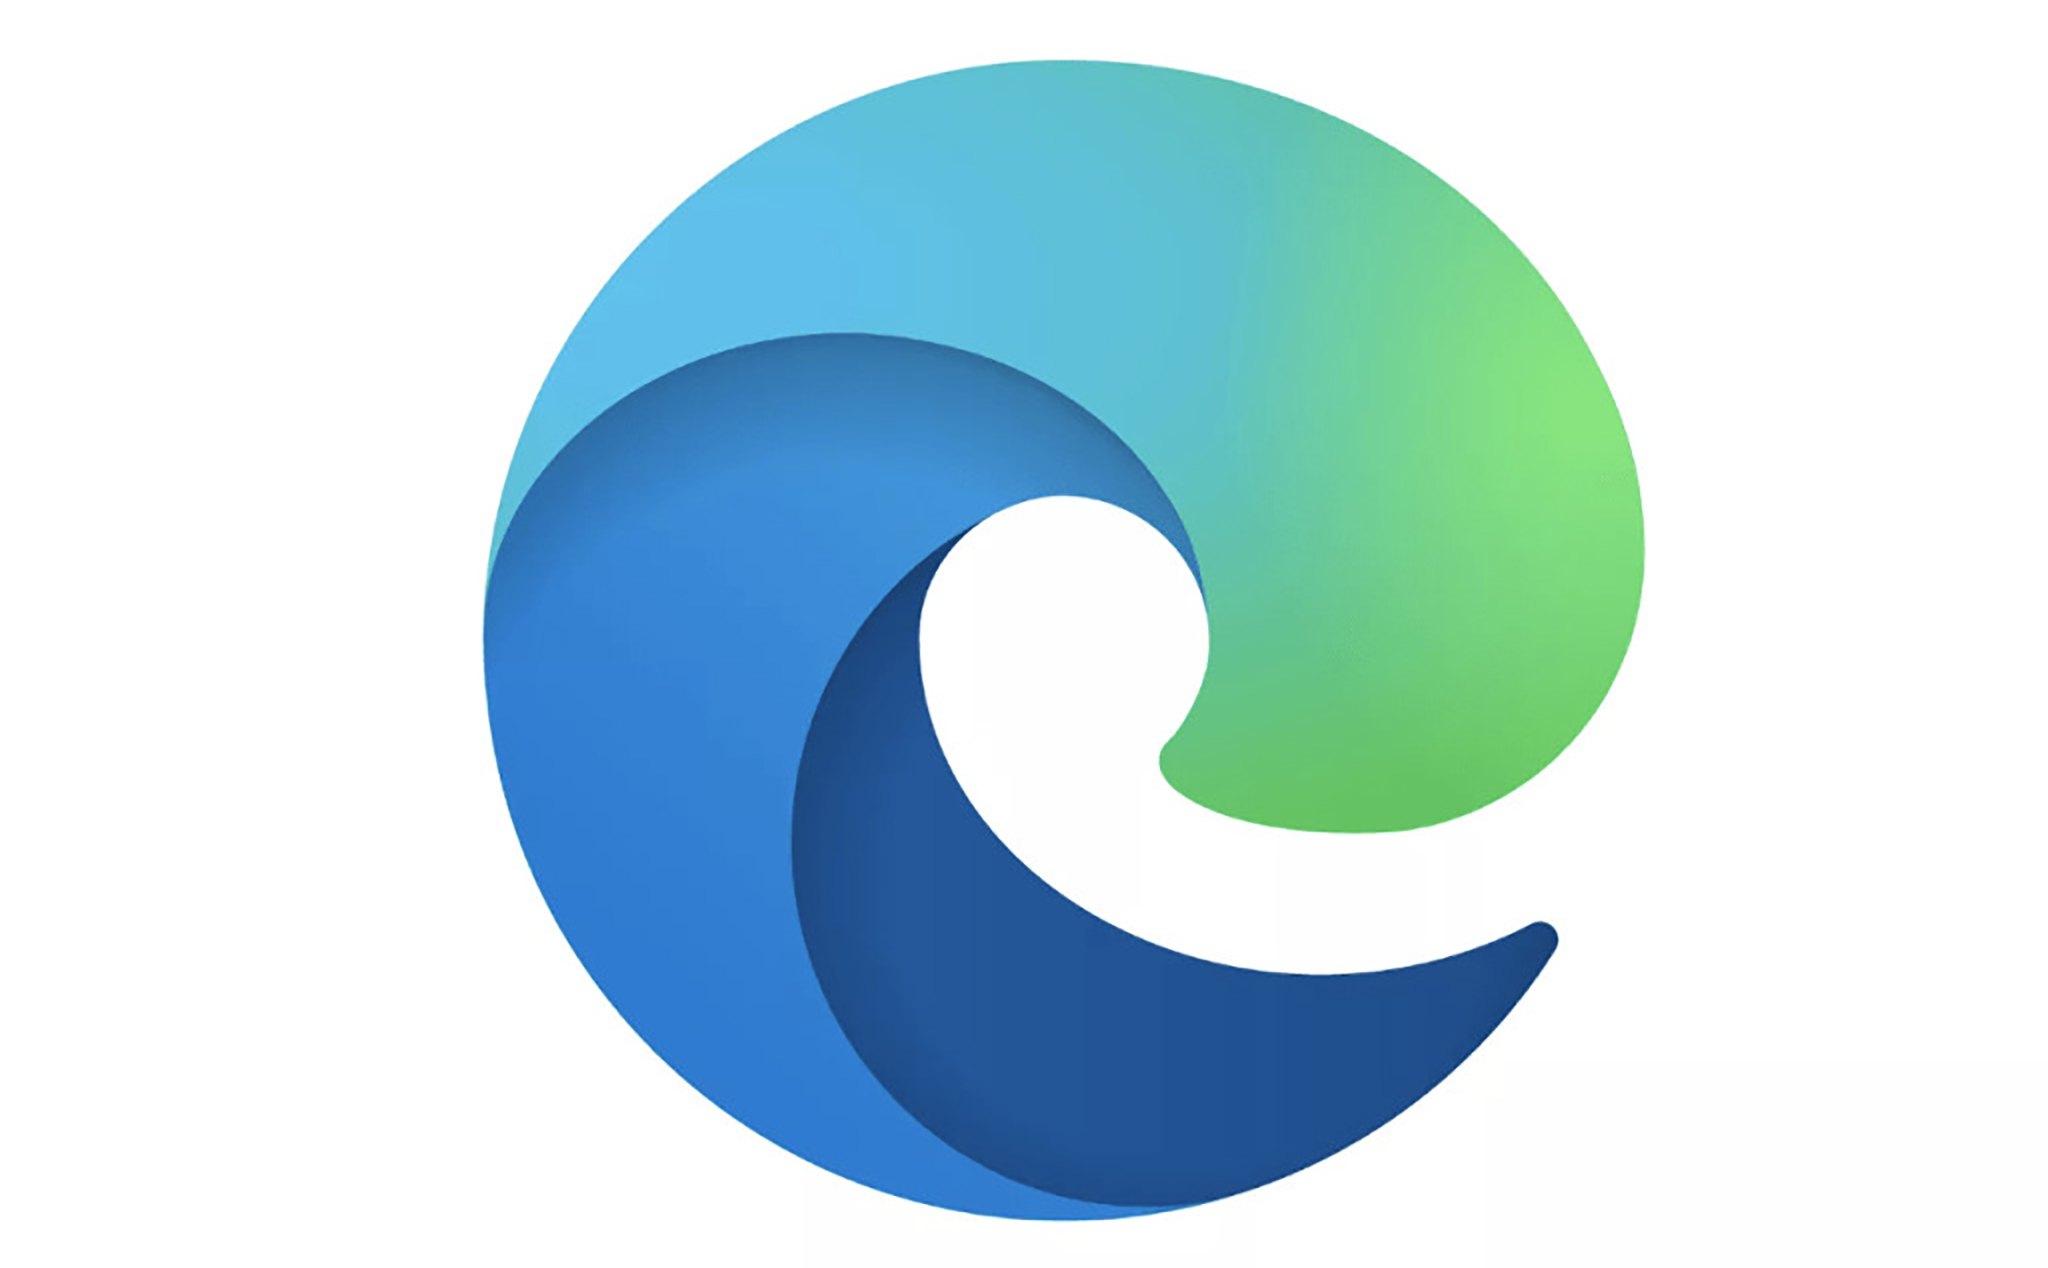 This is the new logo of Microsoft Edge browser based on Chromium